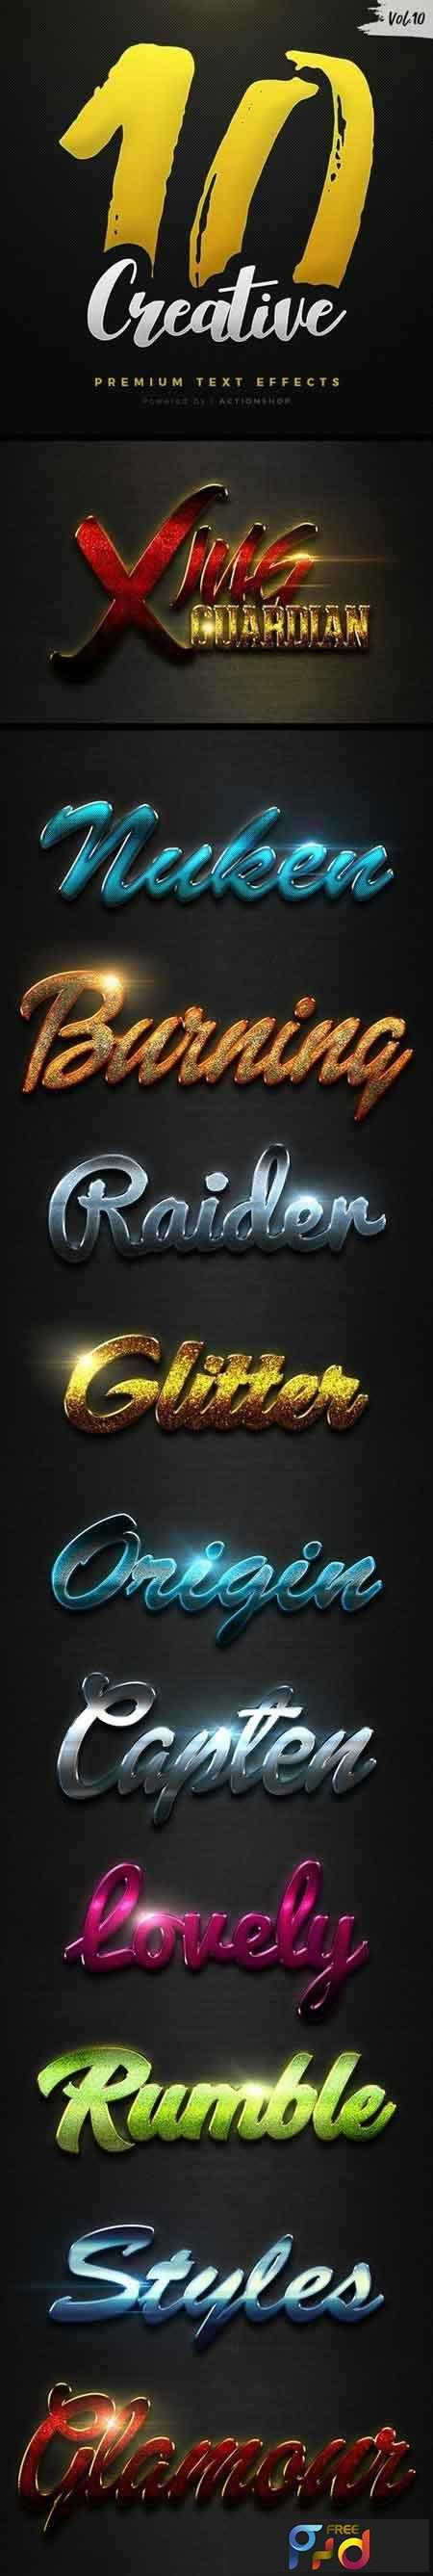 1810184 10 Creative Text Effects Vol.10 21118588 1